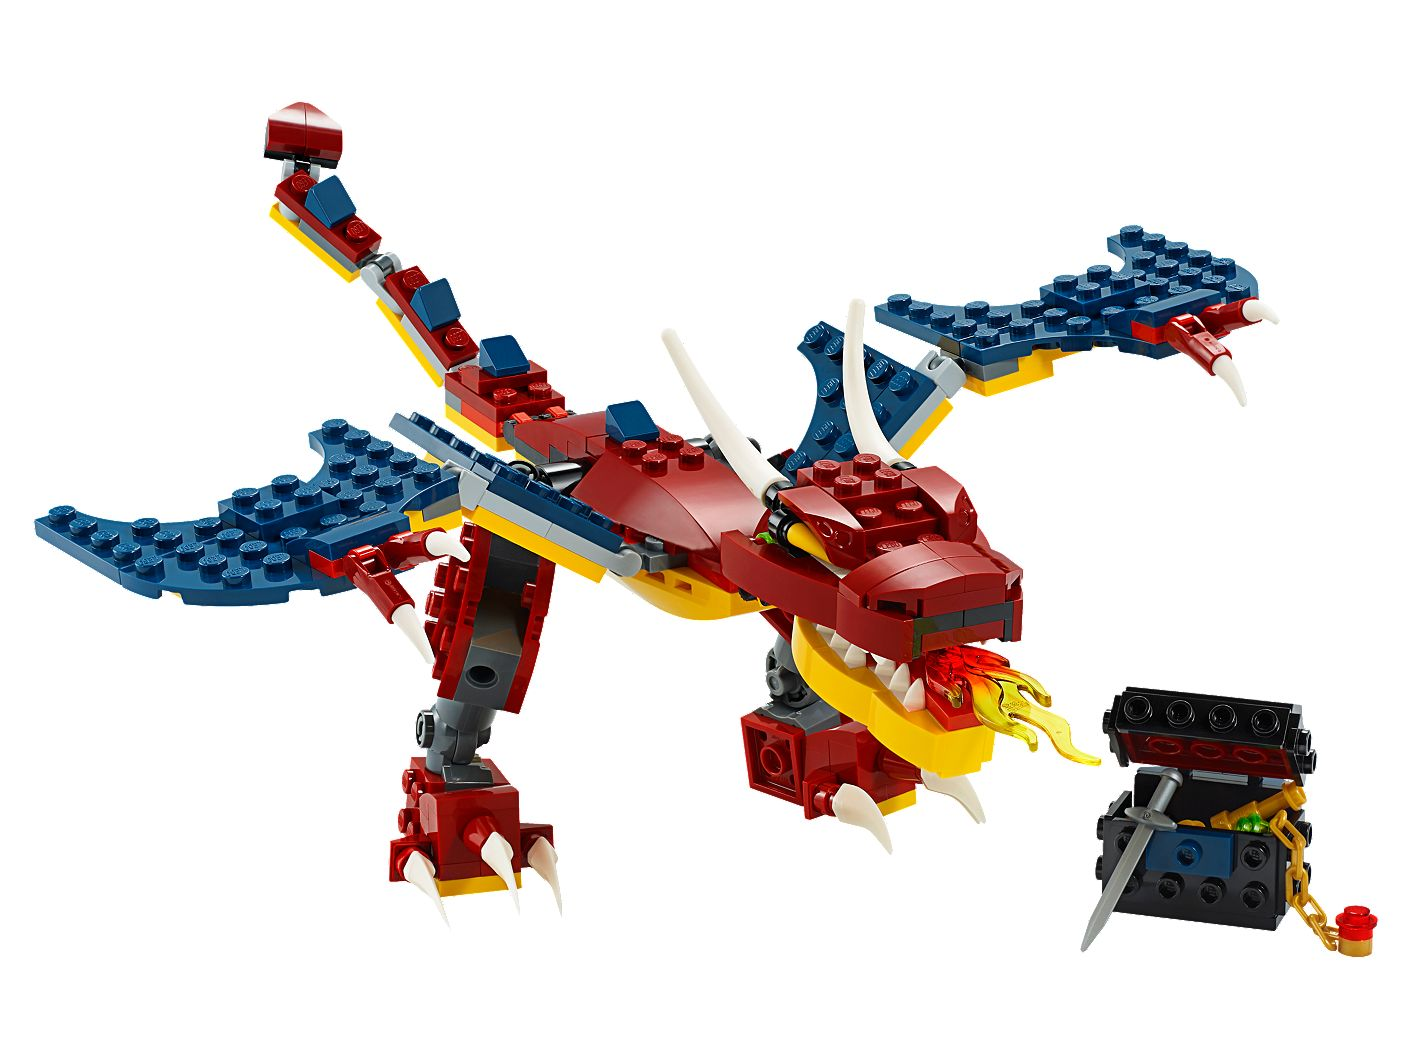 Fire Dragon 31102 | Creator 3 in 1 | Buy online at the Official LEGO® Shop SE